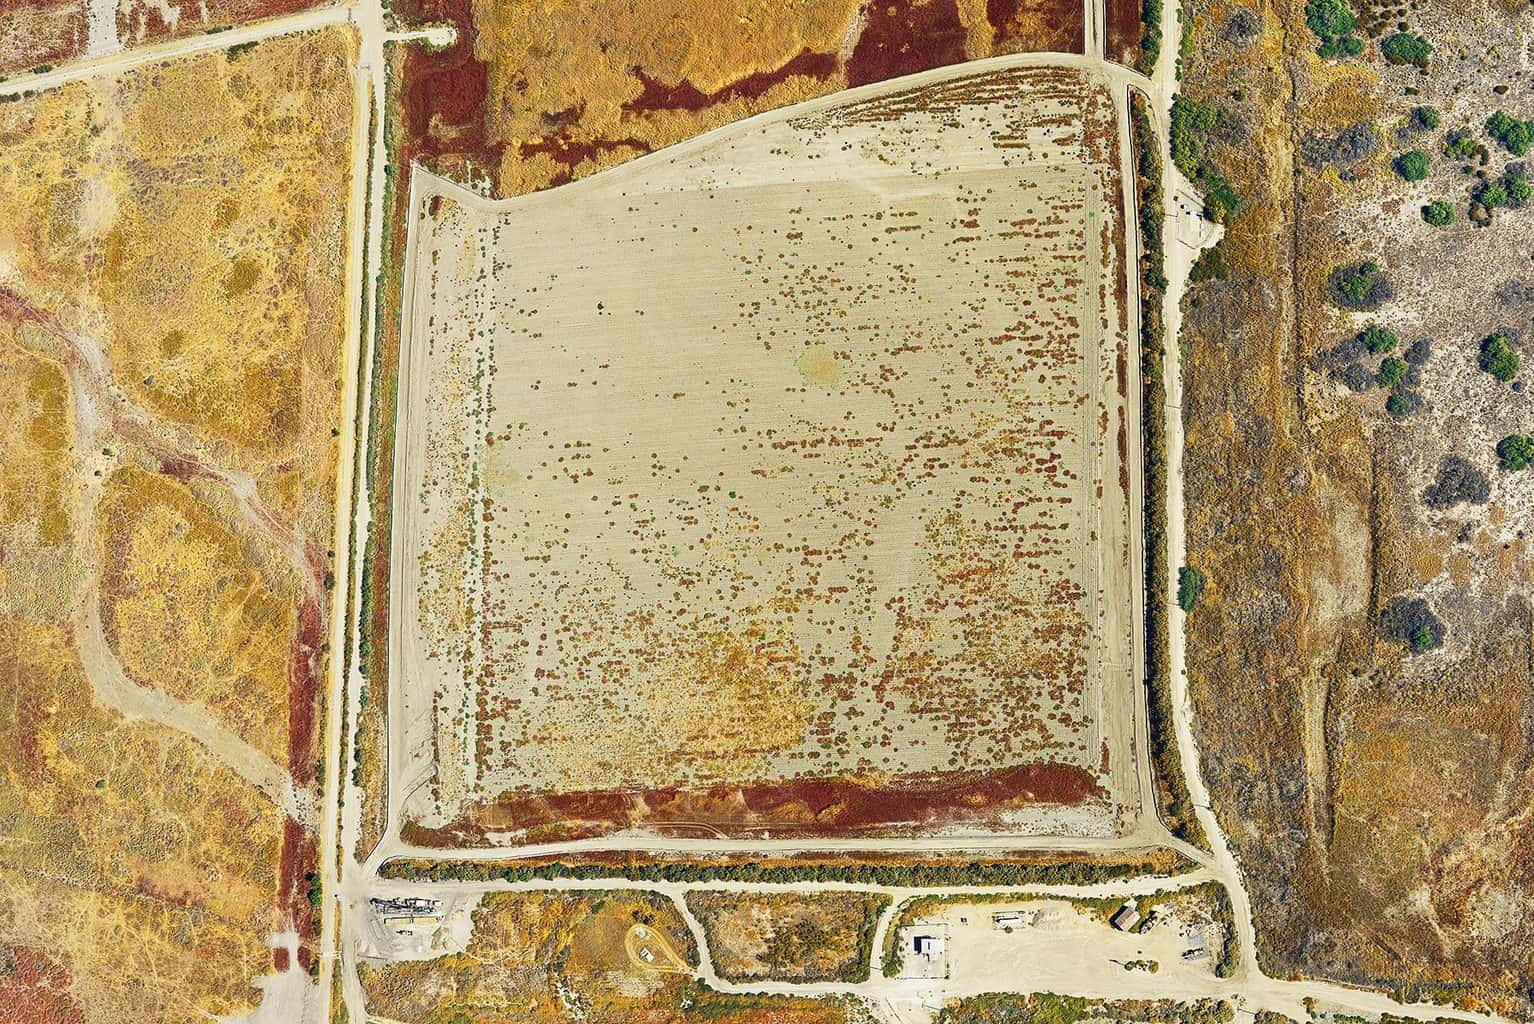 Agriculture #003, Mulholland's Gold, 2011-2014